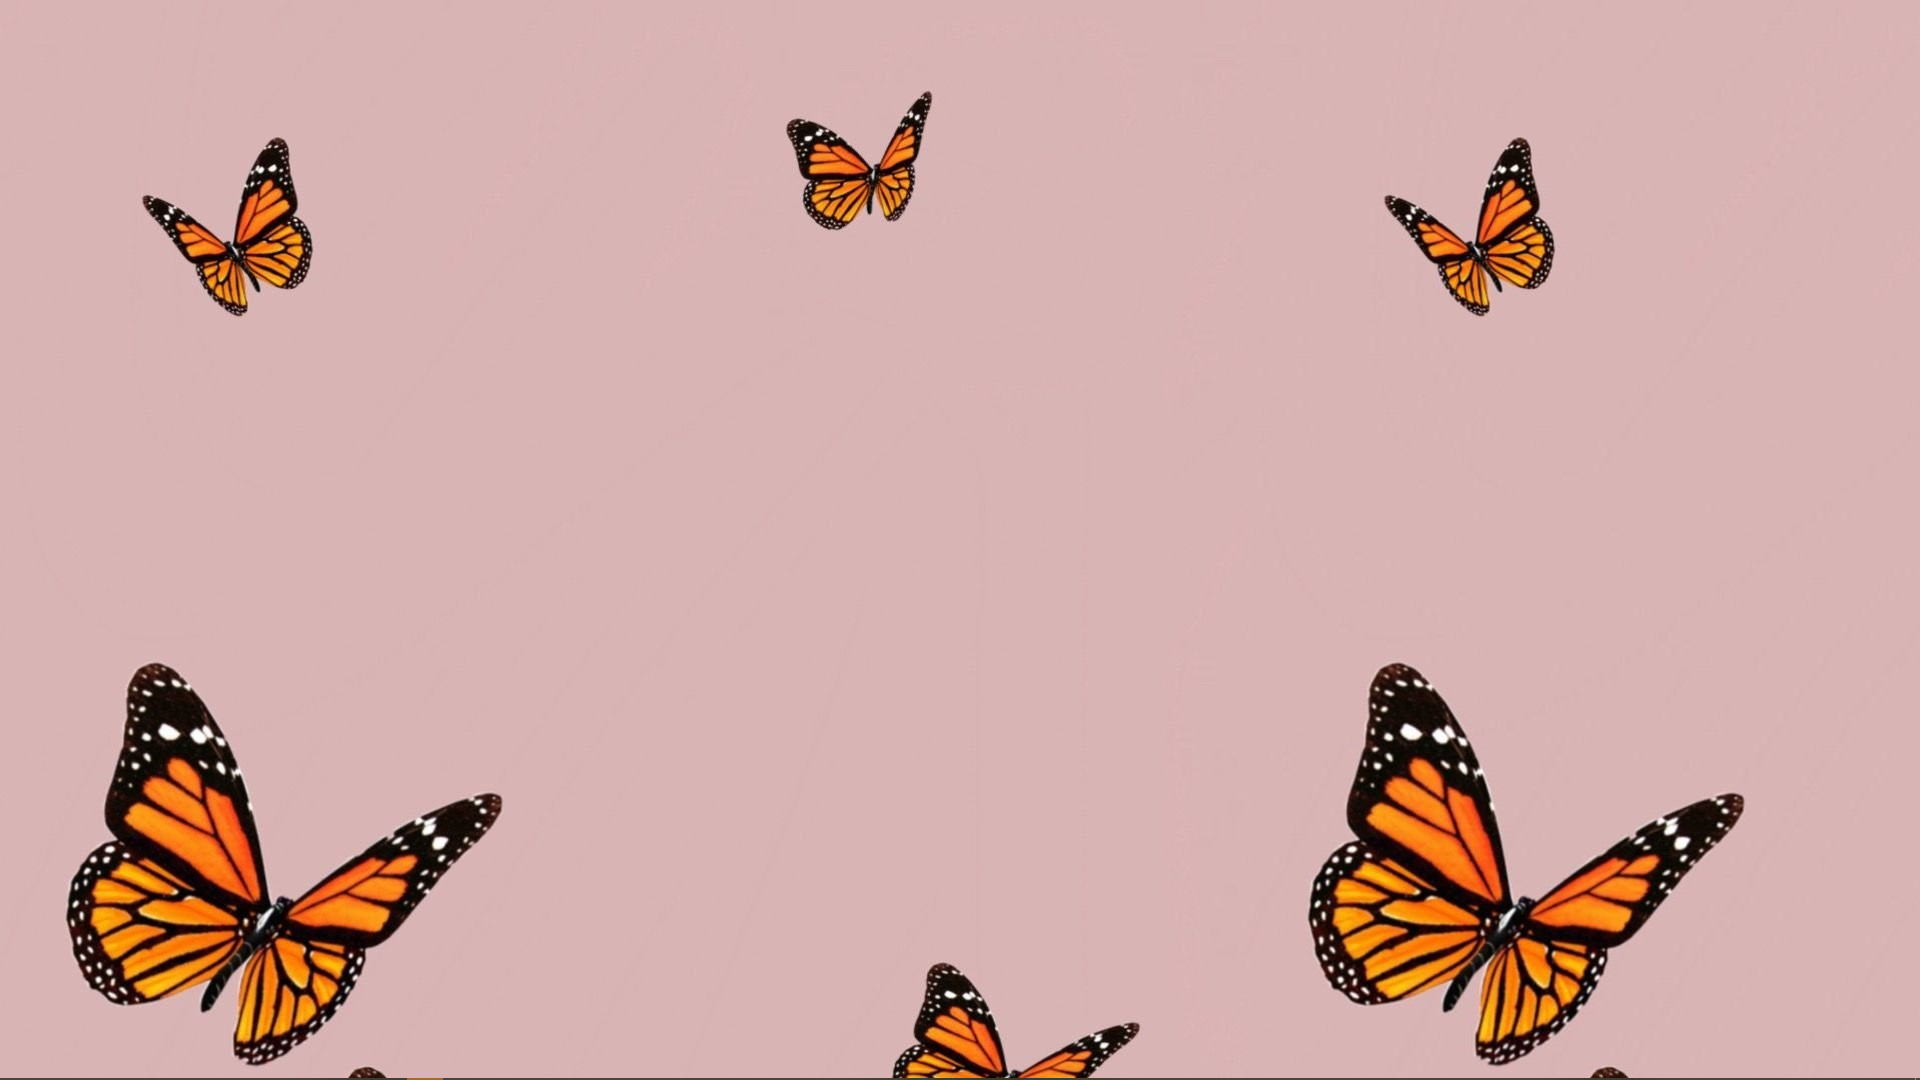 Butterfly Background In 2020 Computer Wallpaper Desktop Wallpapers Cute Desktop Wallpaper Cute Laptop Wallpaper